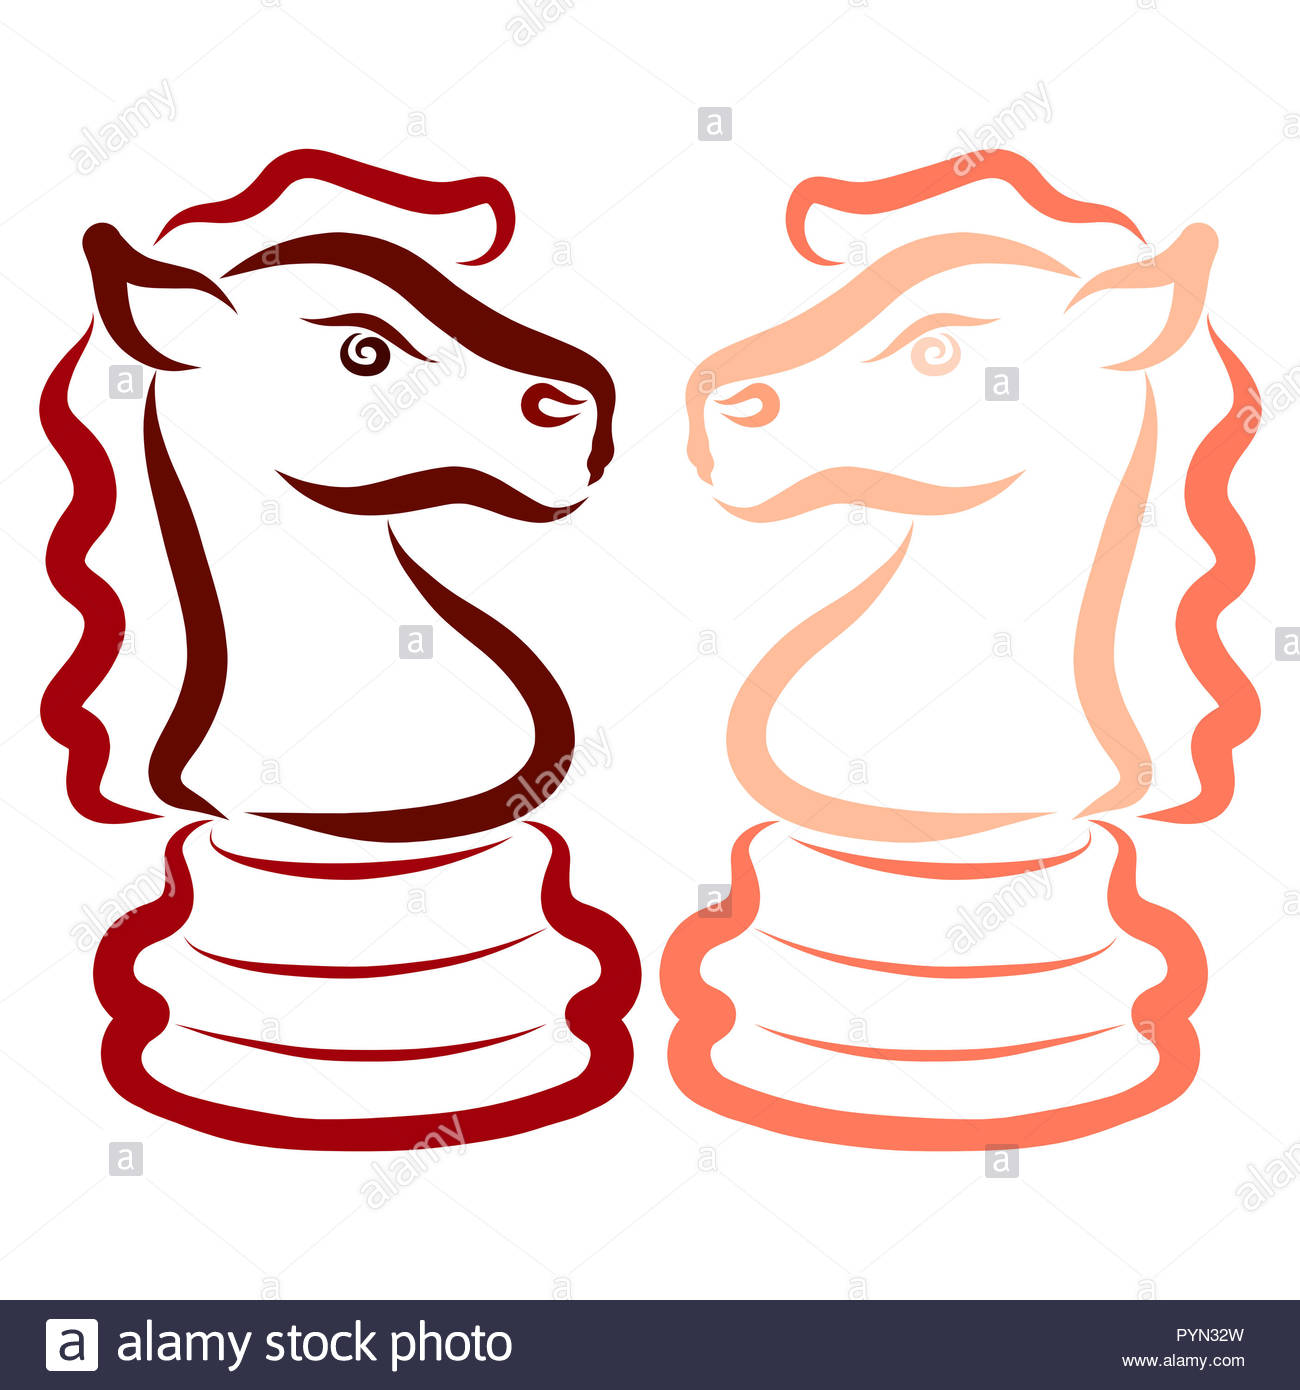 Two horses, chess pieces, knights, opponents, intellectual game - Stock Image